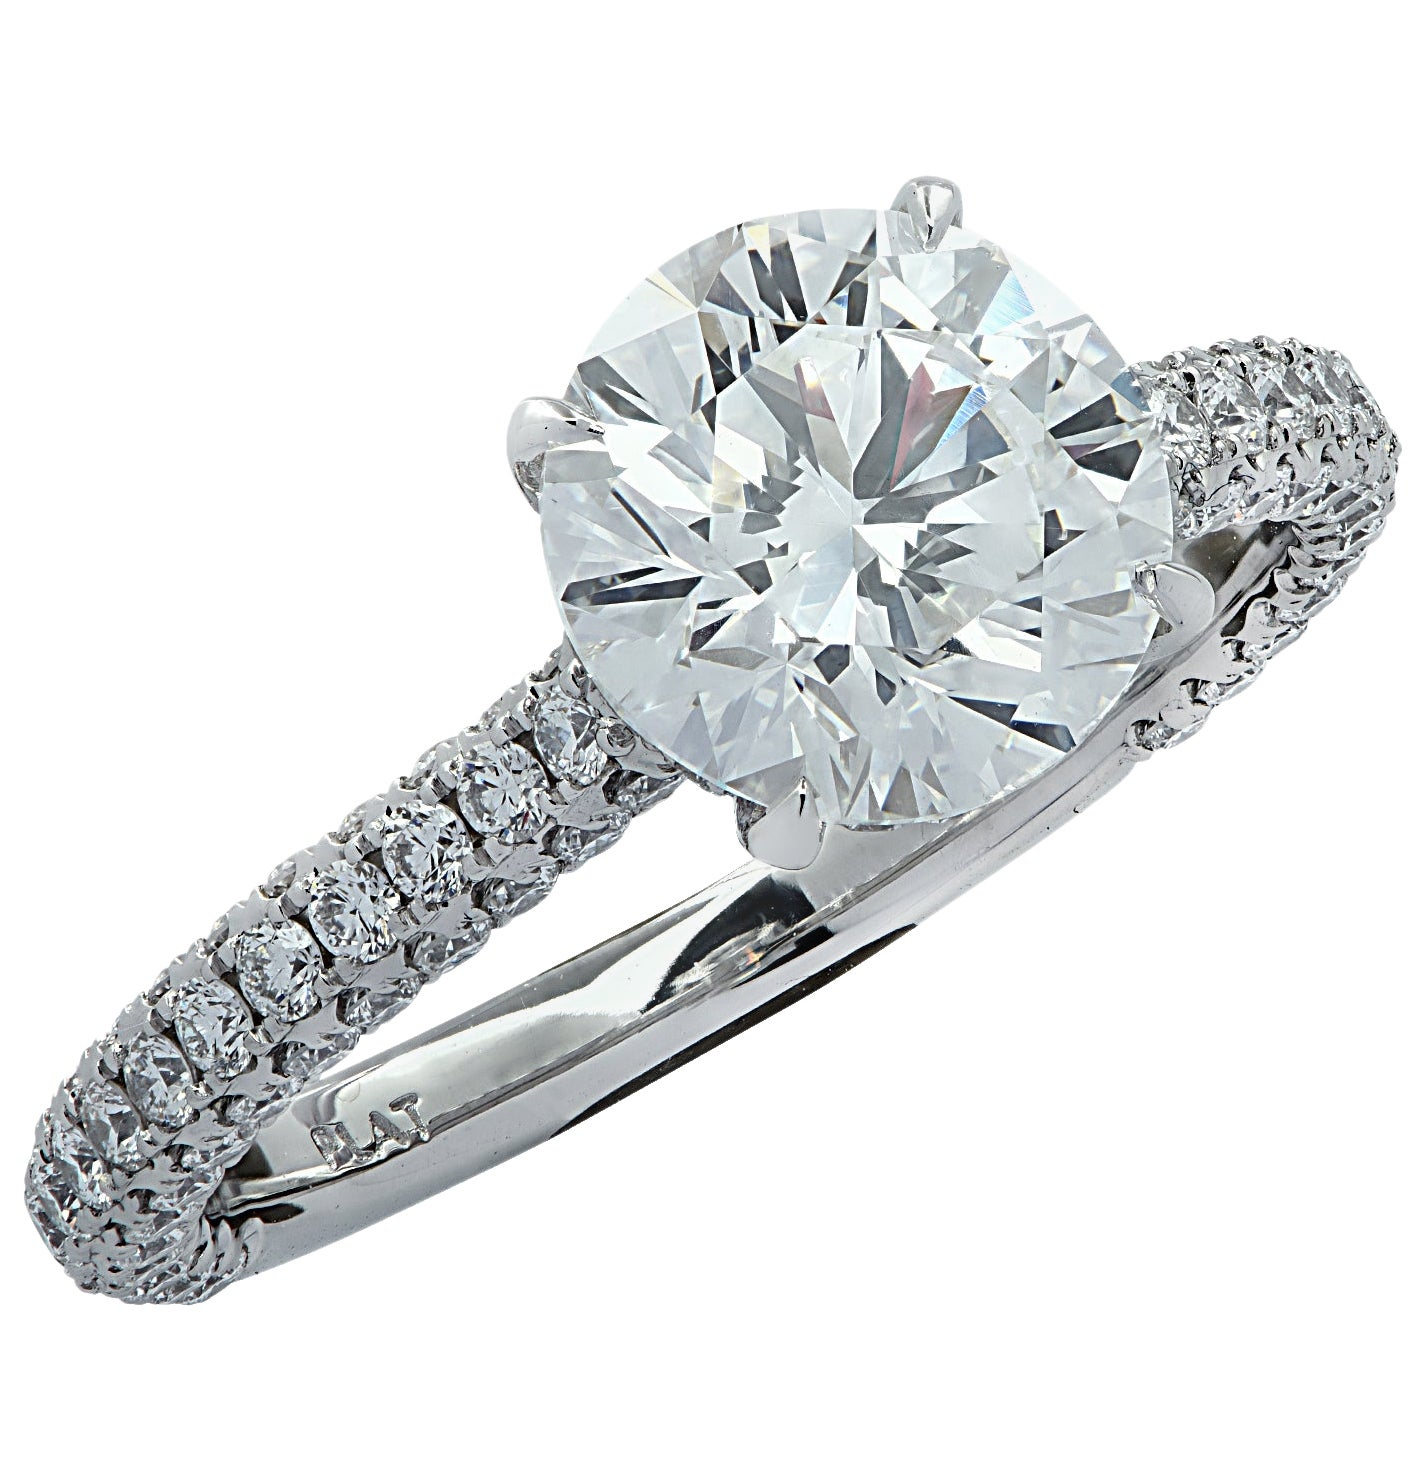 Vivid Diamonds GIA Certified 2.01 Carat Diamond Engagement Ring